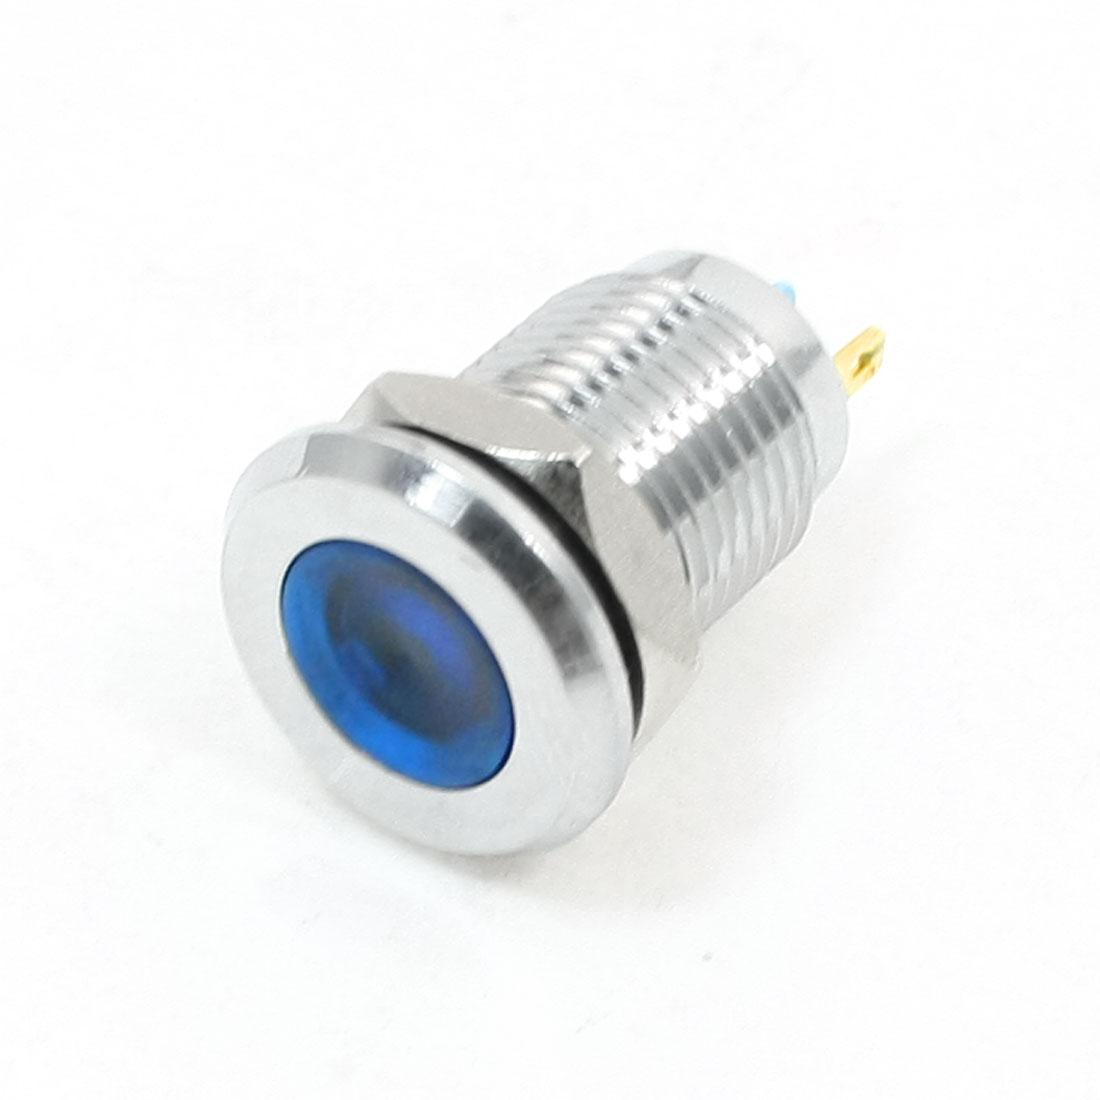 12mm Panel Mounting Blue Indicator Light Pilot Signal Lamp DC 24V